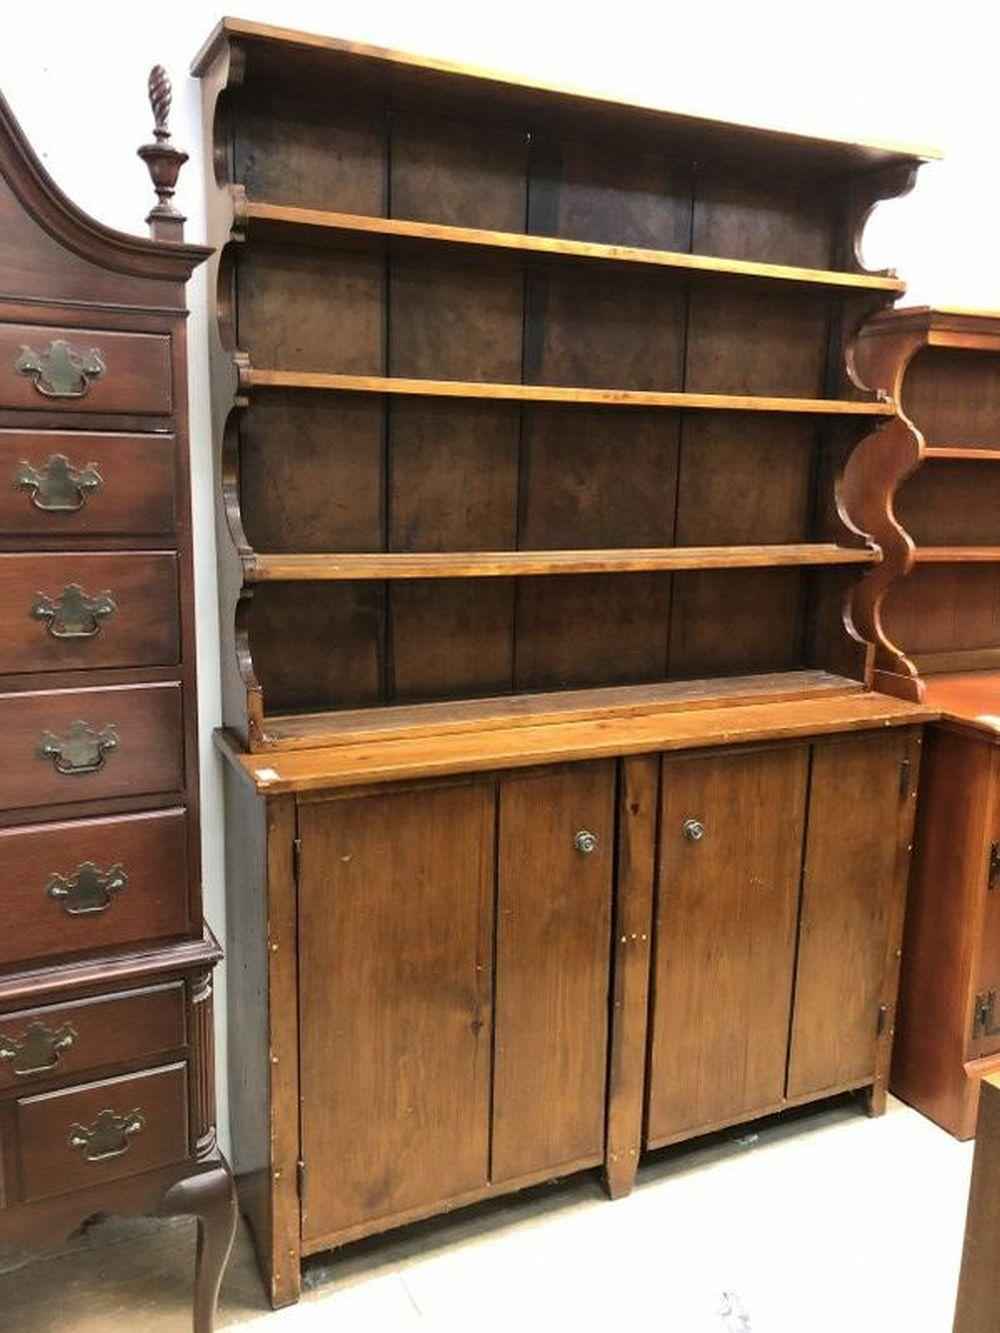 EARLY PINE COUNTRY OPEN TOP CUPBOARD HUDSON VALLEY